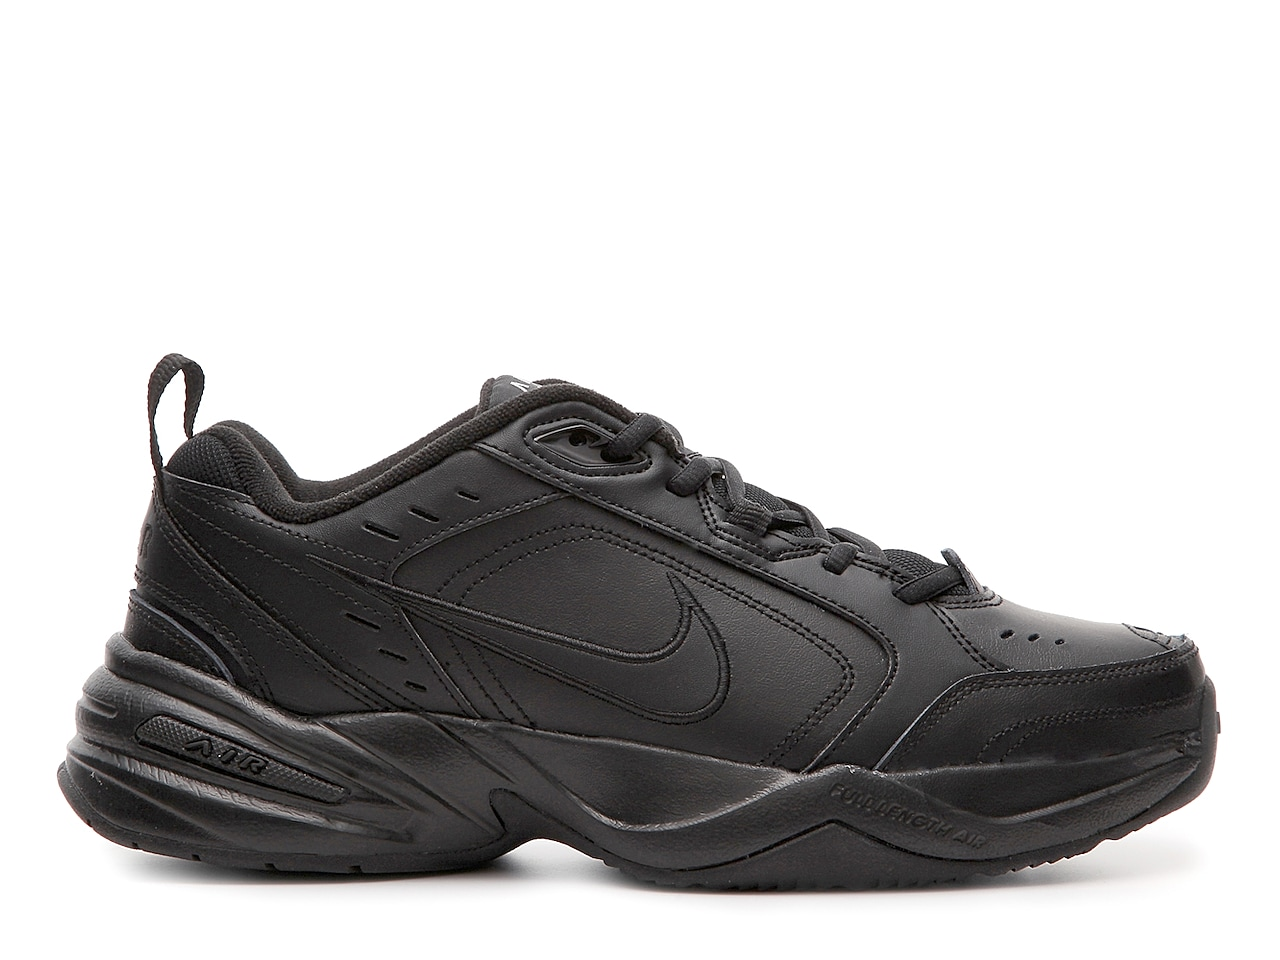 esencia Mojado insulto  Nike Air Monarch IV Training Shoe - Men's Men's Shoes | DSW